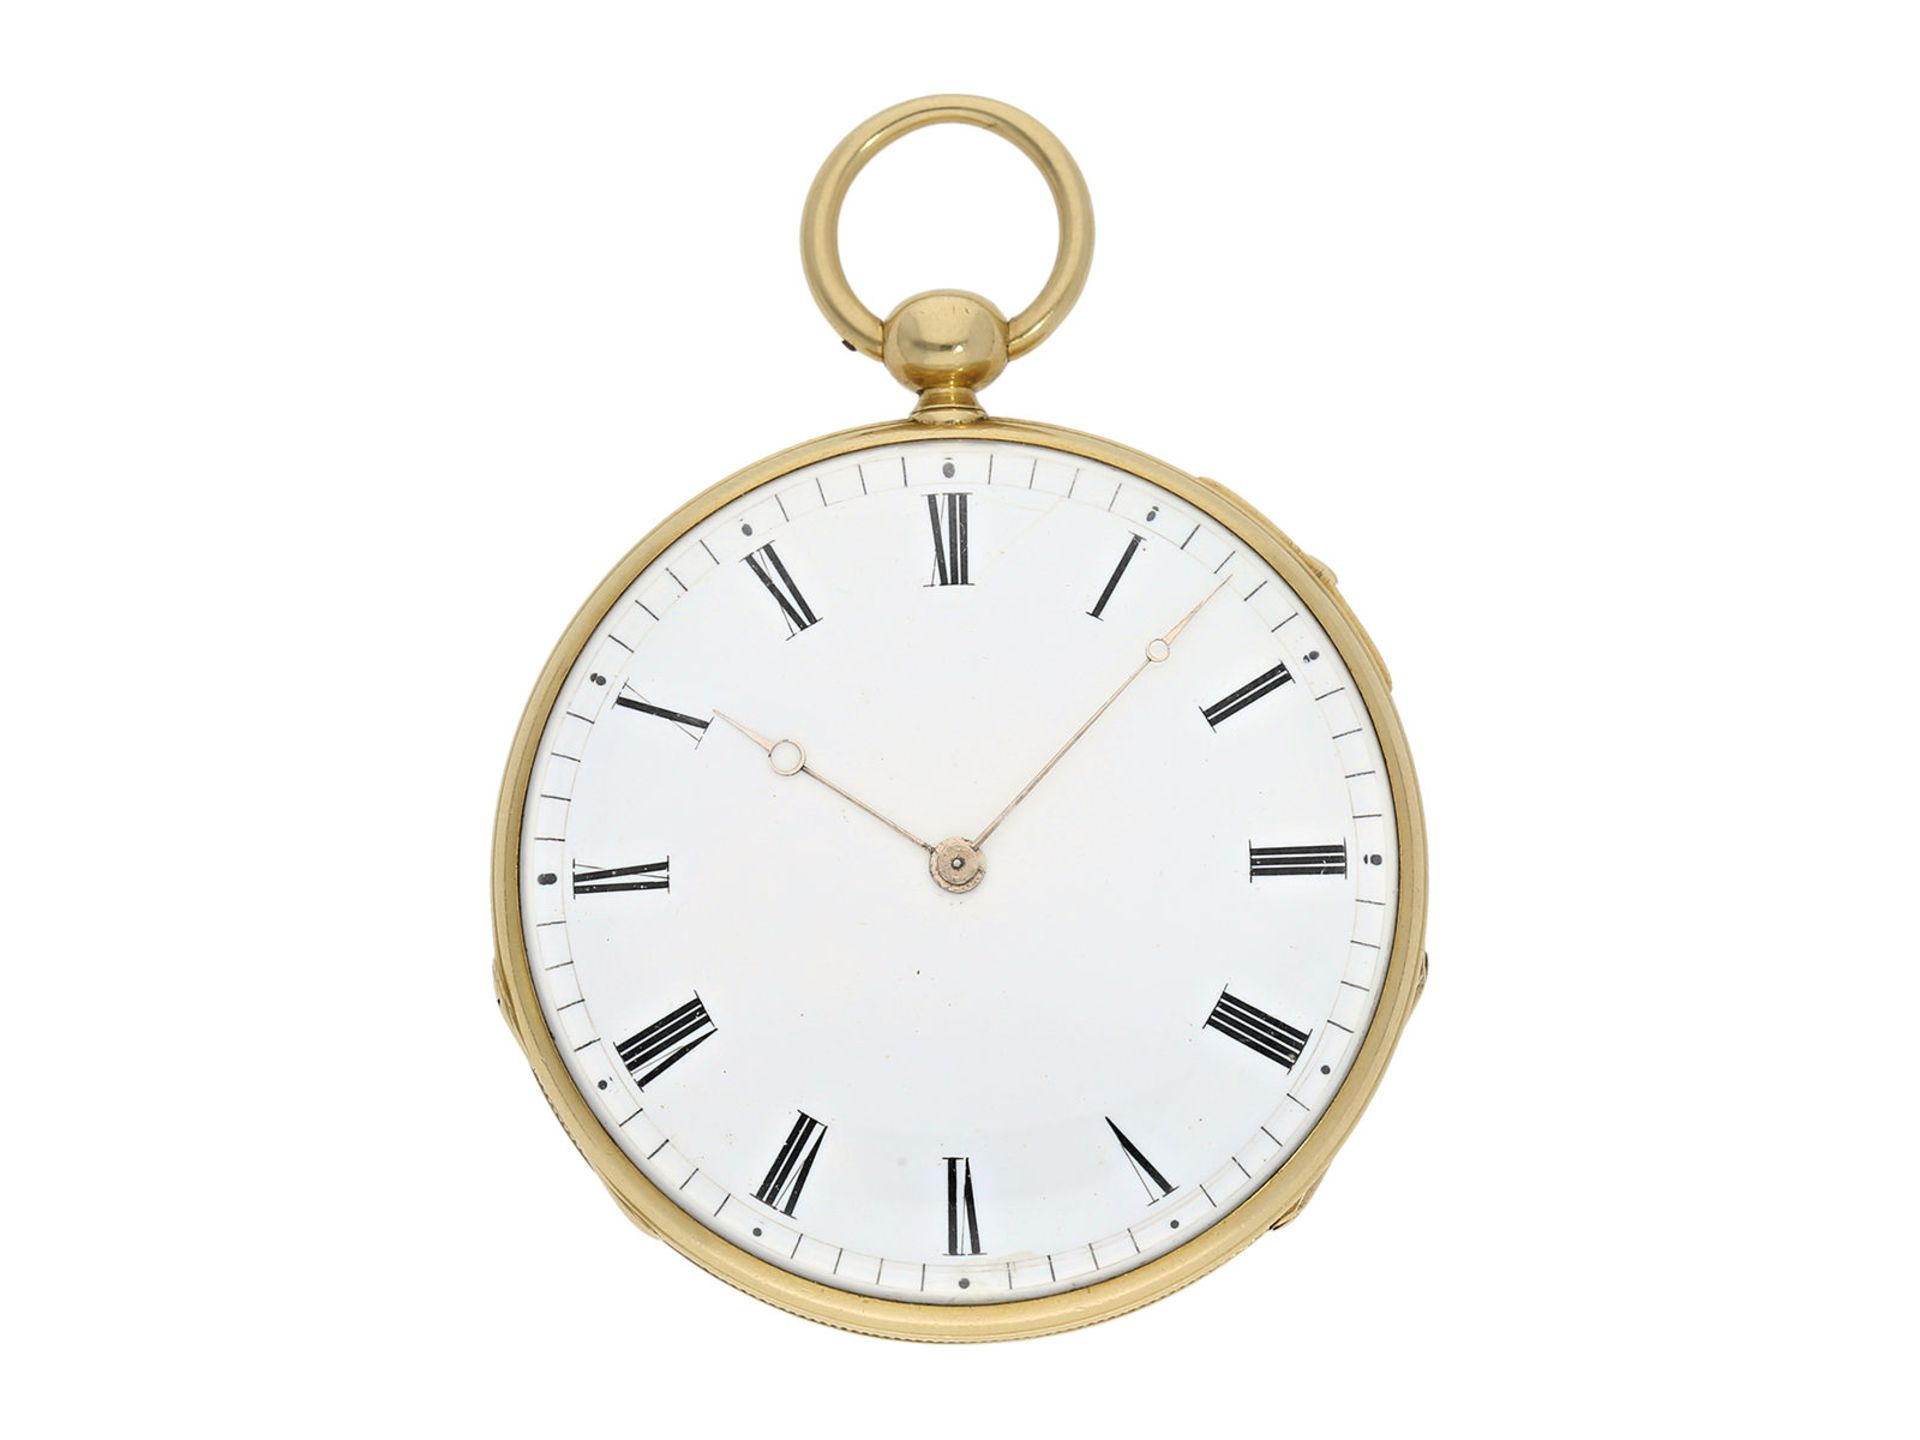 Pocket watch: early and small, very fine Lepine repeater, watchmaker from Breguet's circle, A.